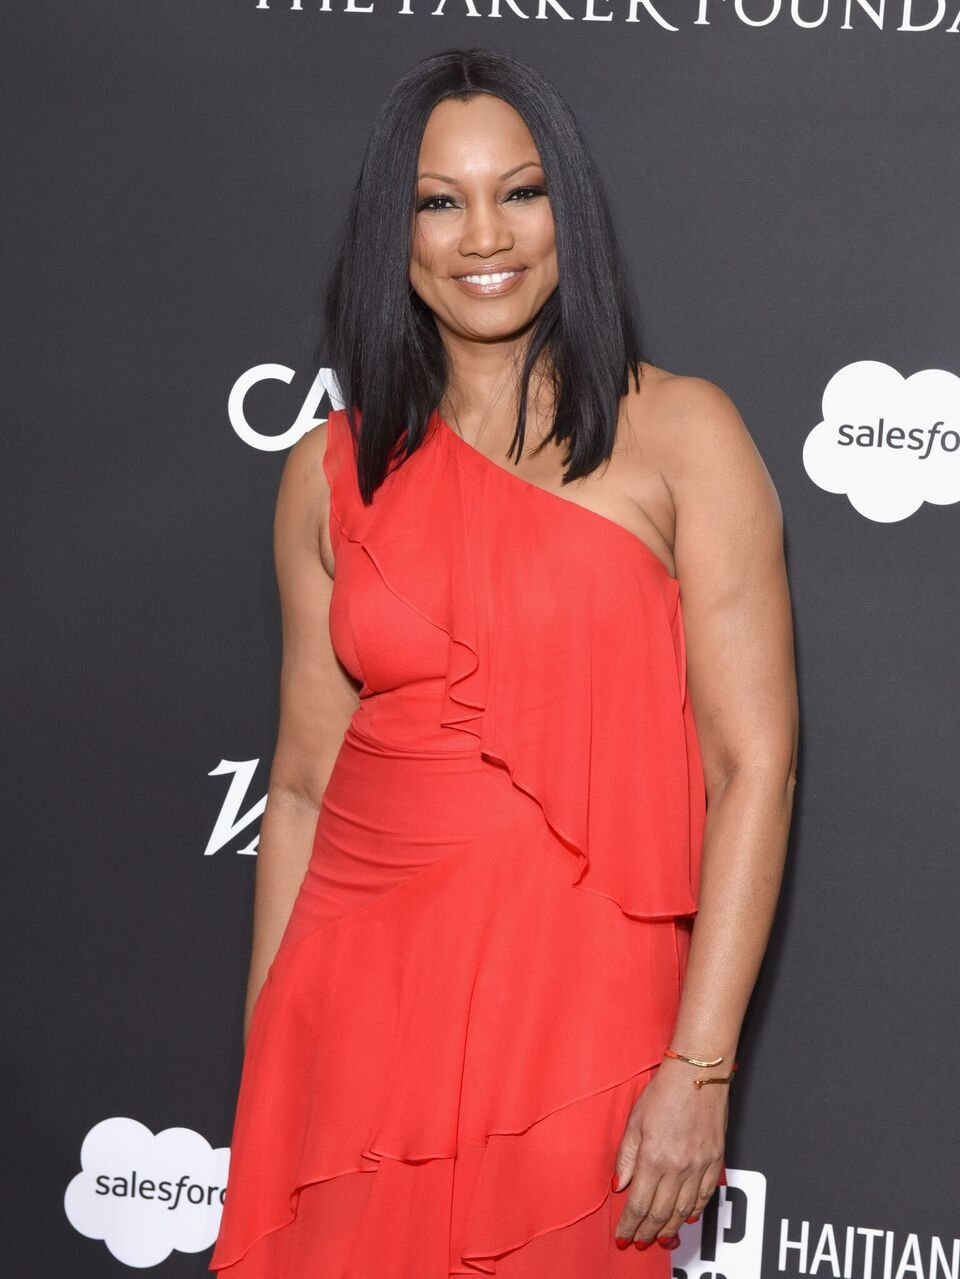 Garcelle Beauvais attends the 7th Annual Sean Penn & Friends HAITI RISING Gala benefiting J/P Haitian Relief Organization on January 6, 2018 | Photo: Getty Images